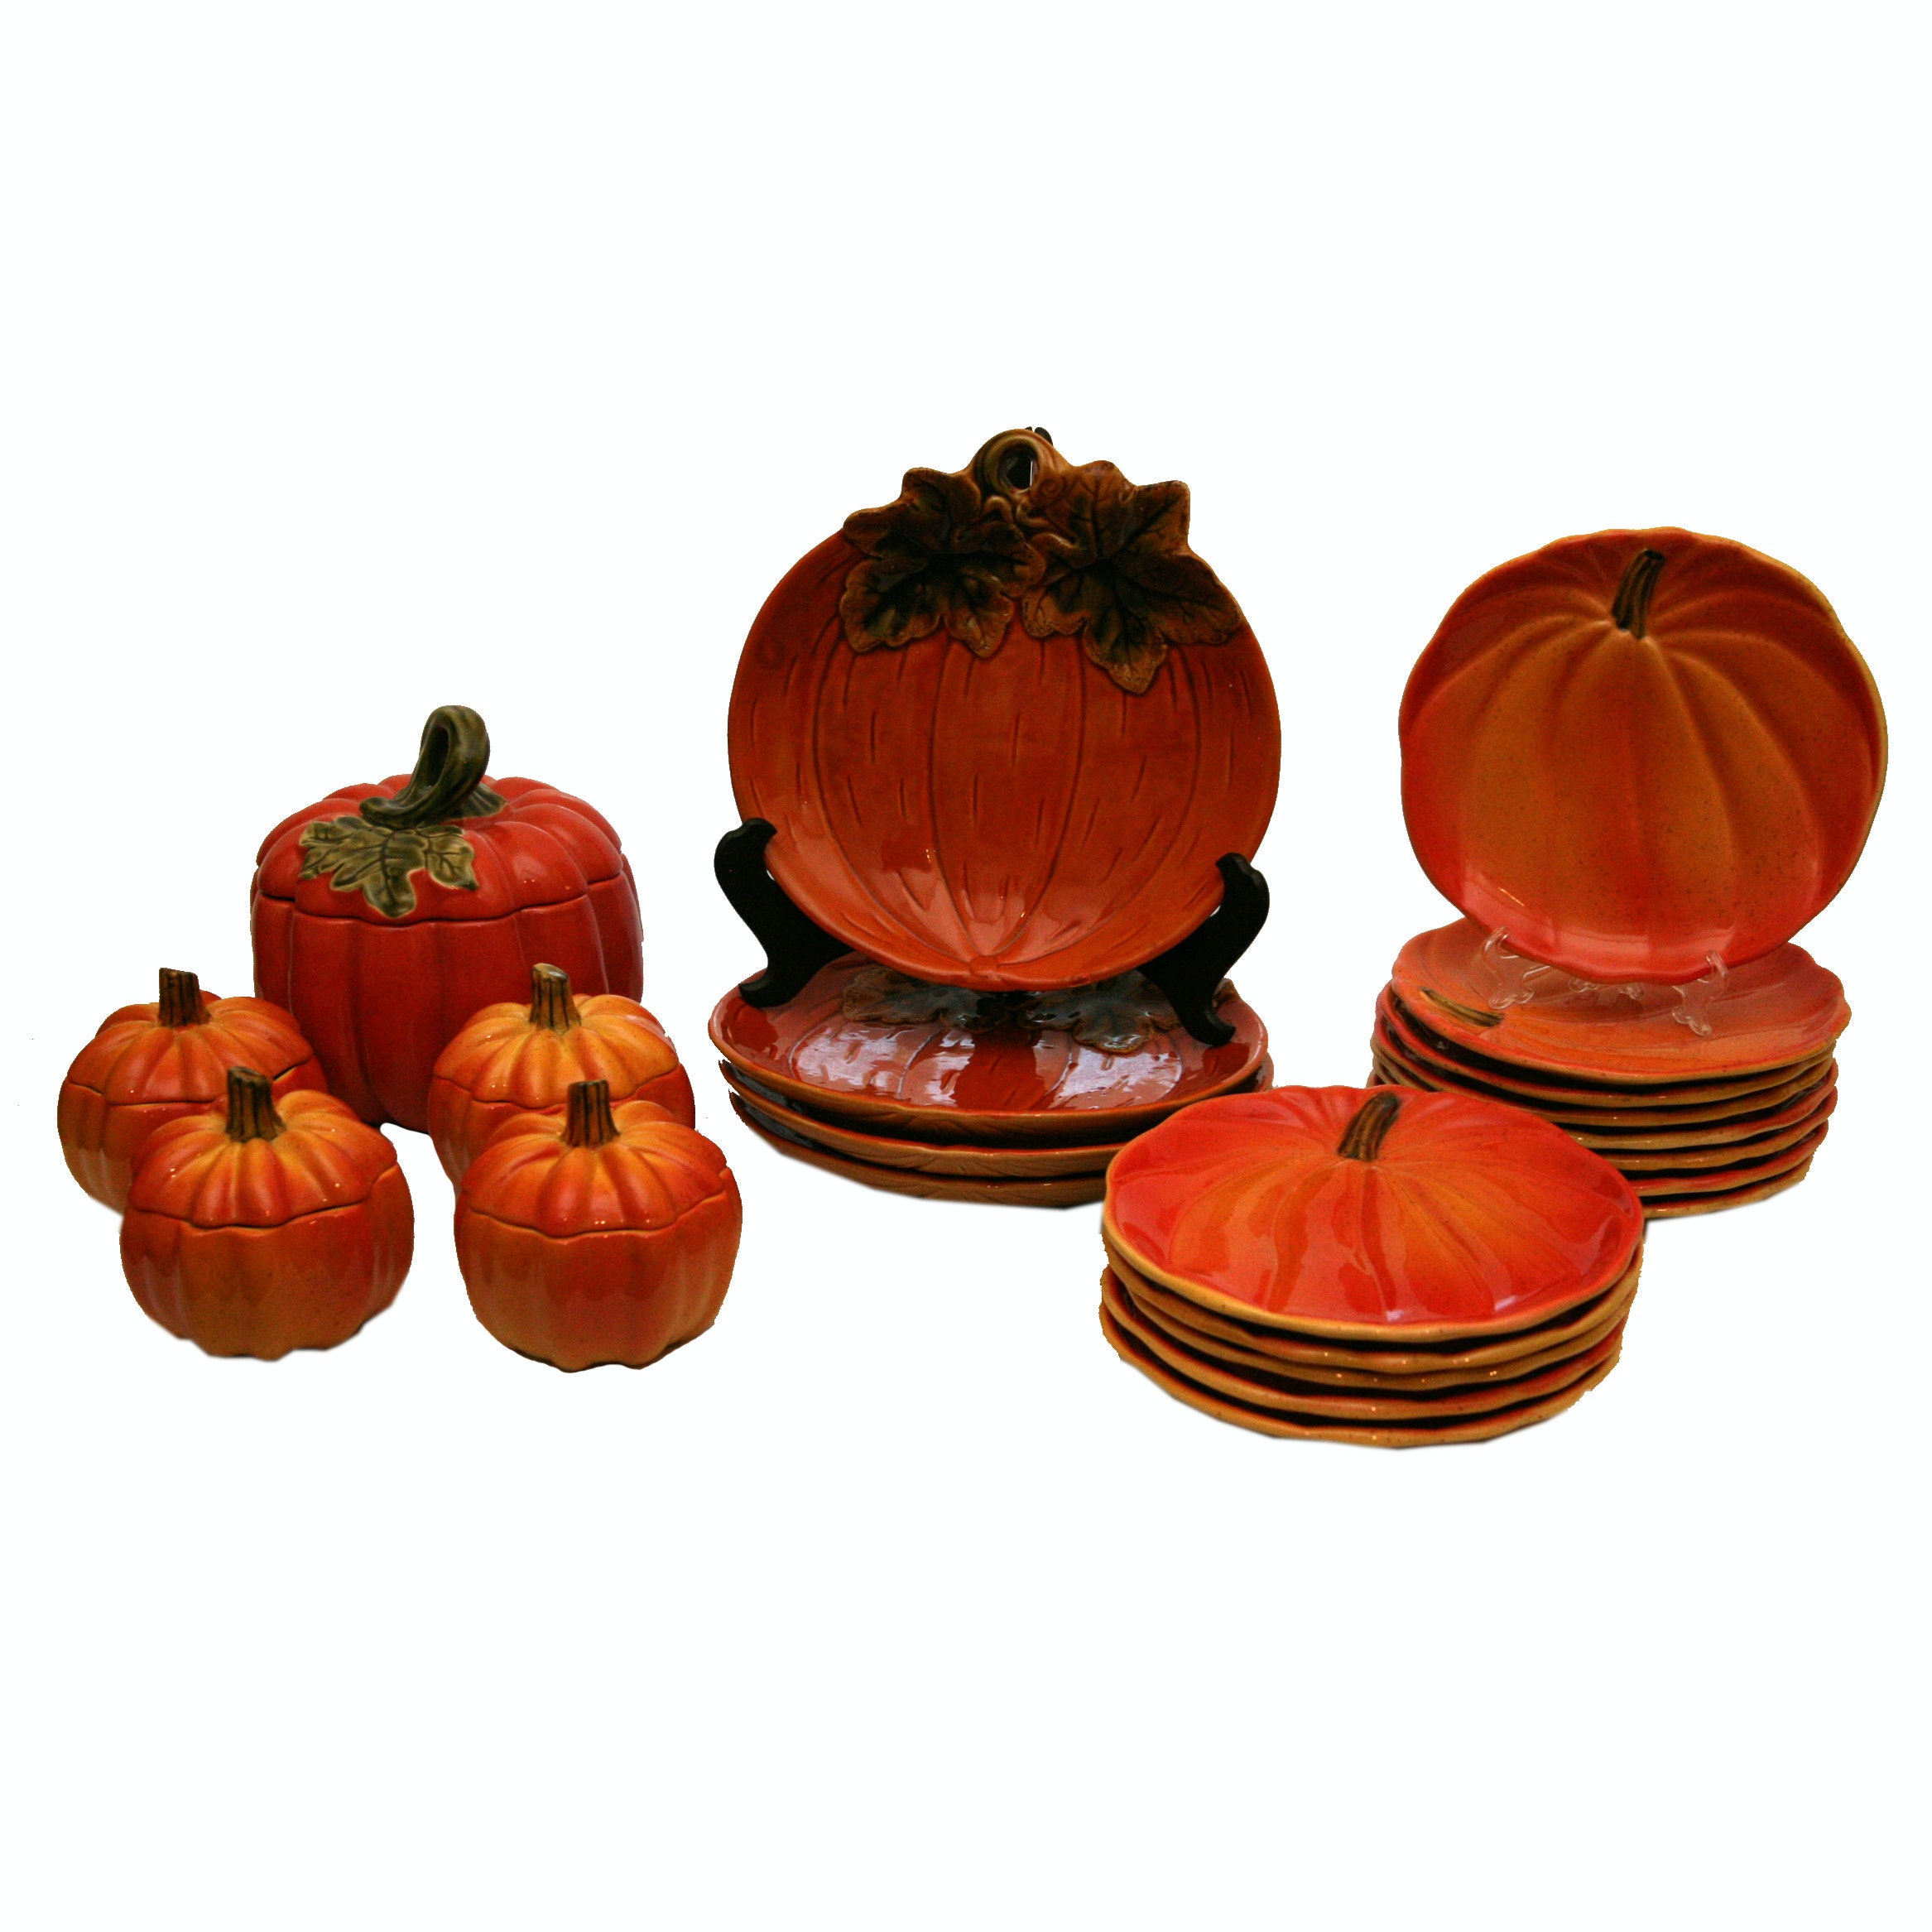 Pumpkin Motif Ceramic Tableware